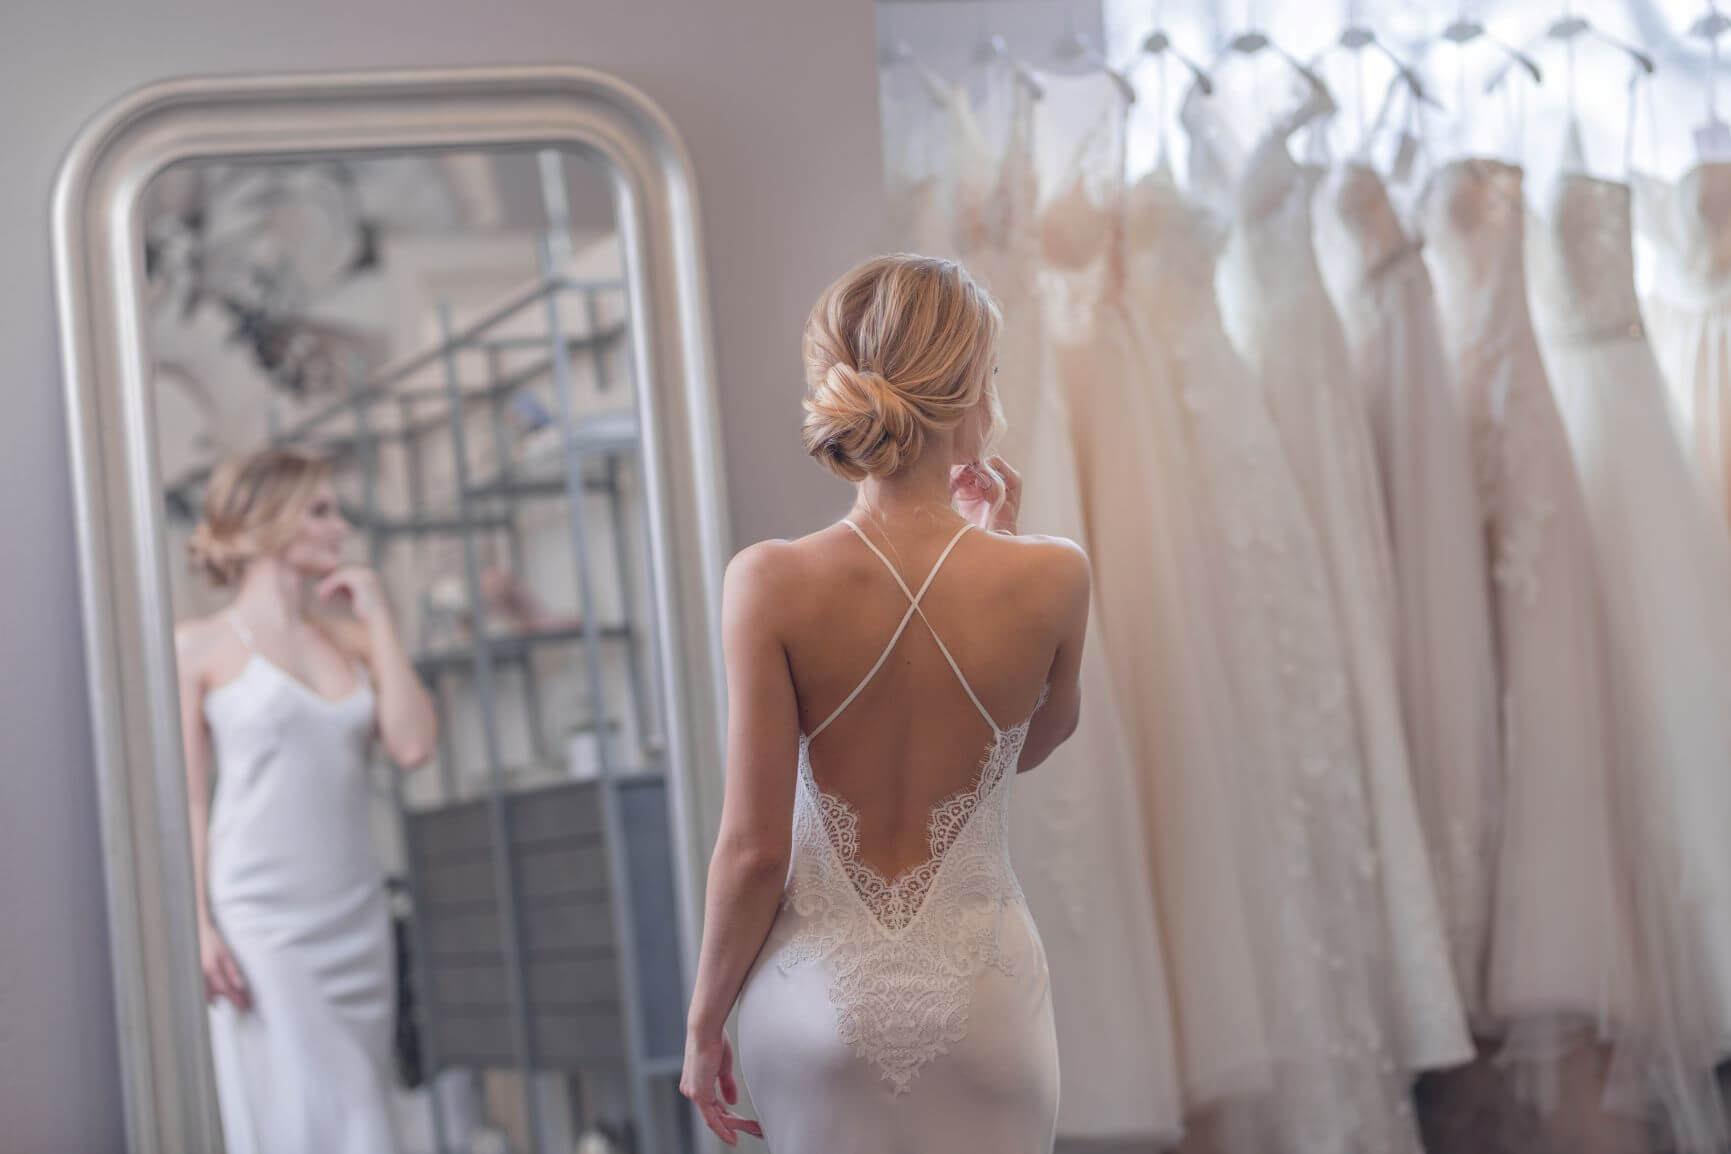 choosing what to wear under your weddig dress